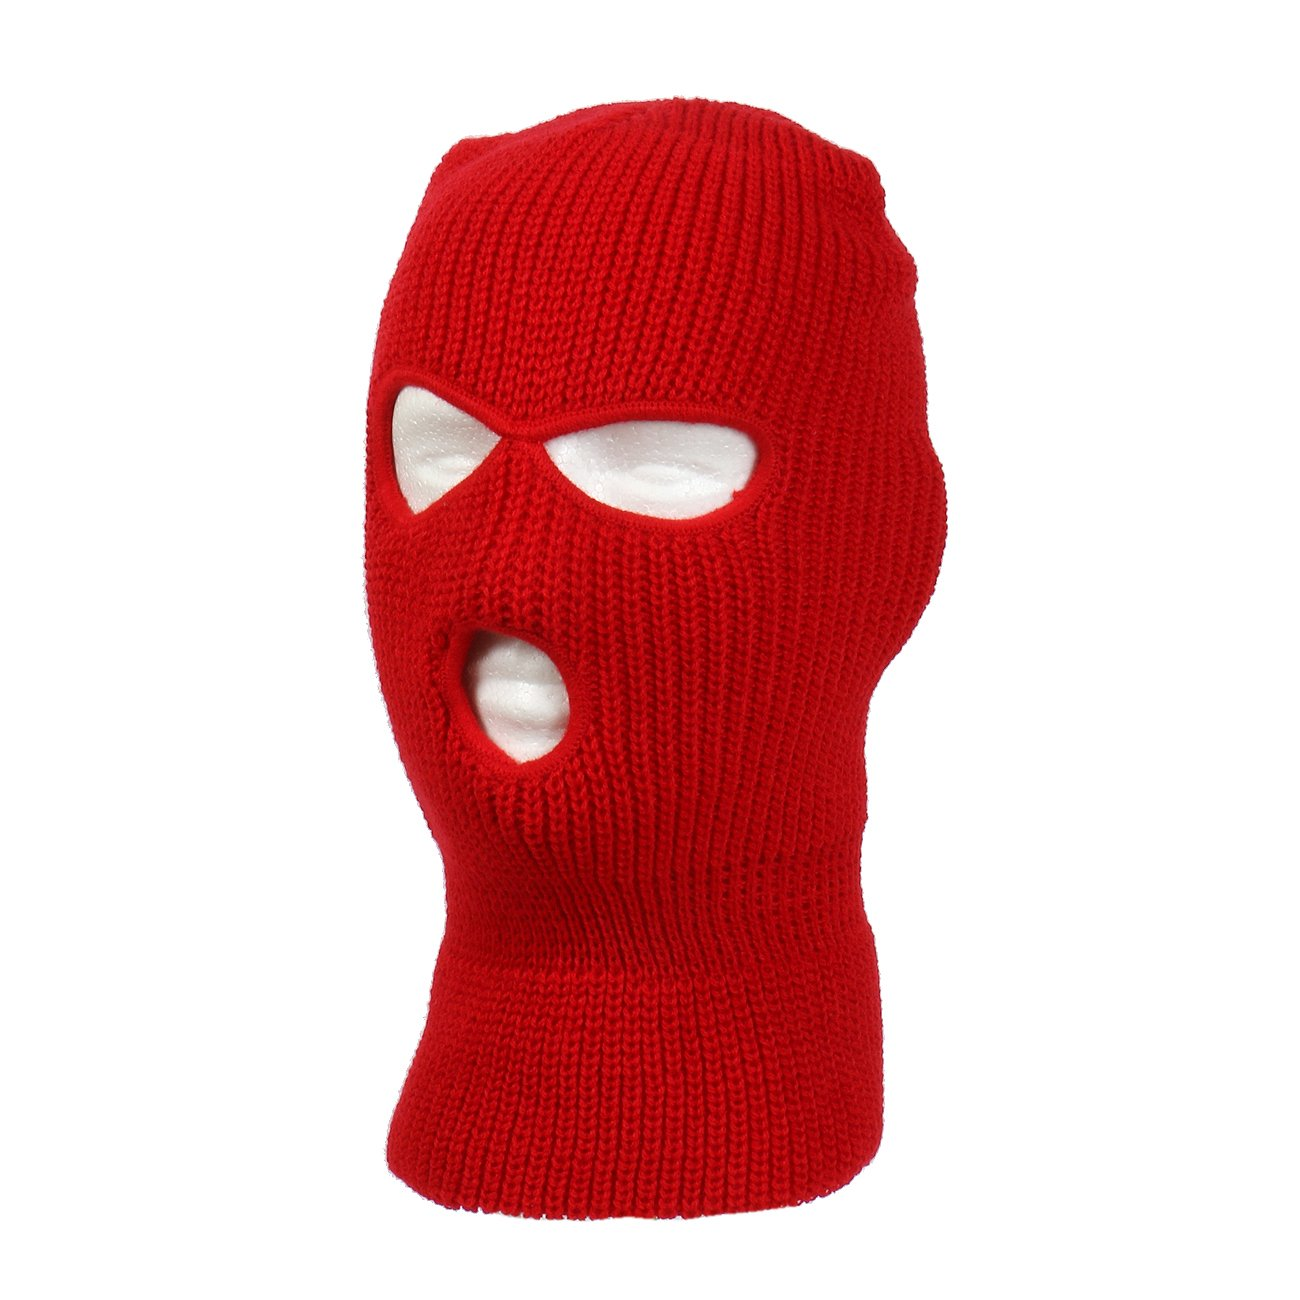 Knitted 3-Hole Full Face Cover Ski Mask